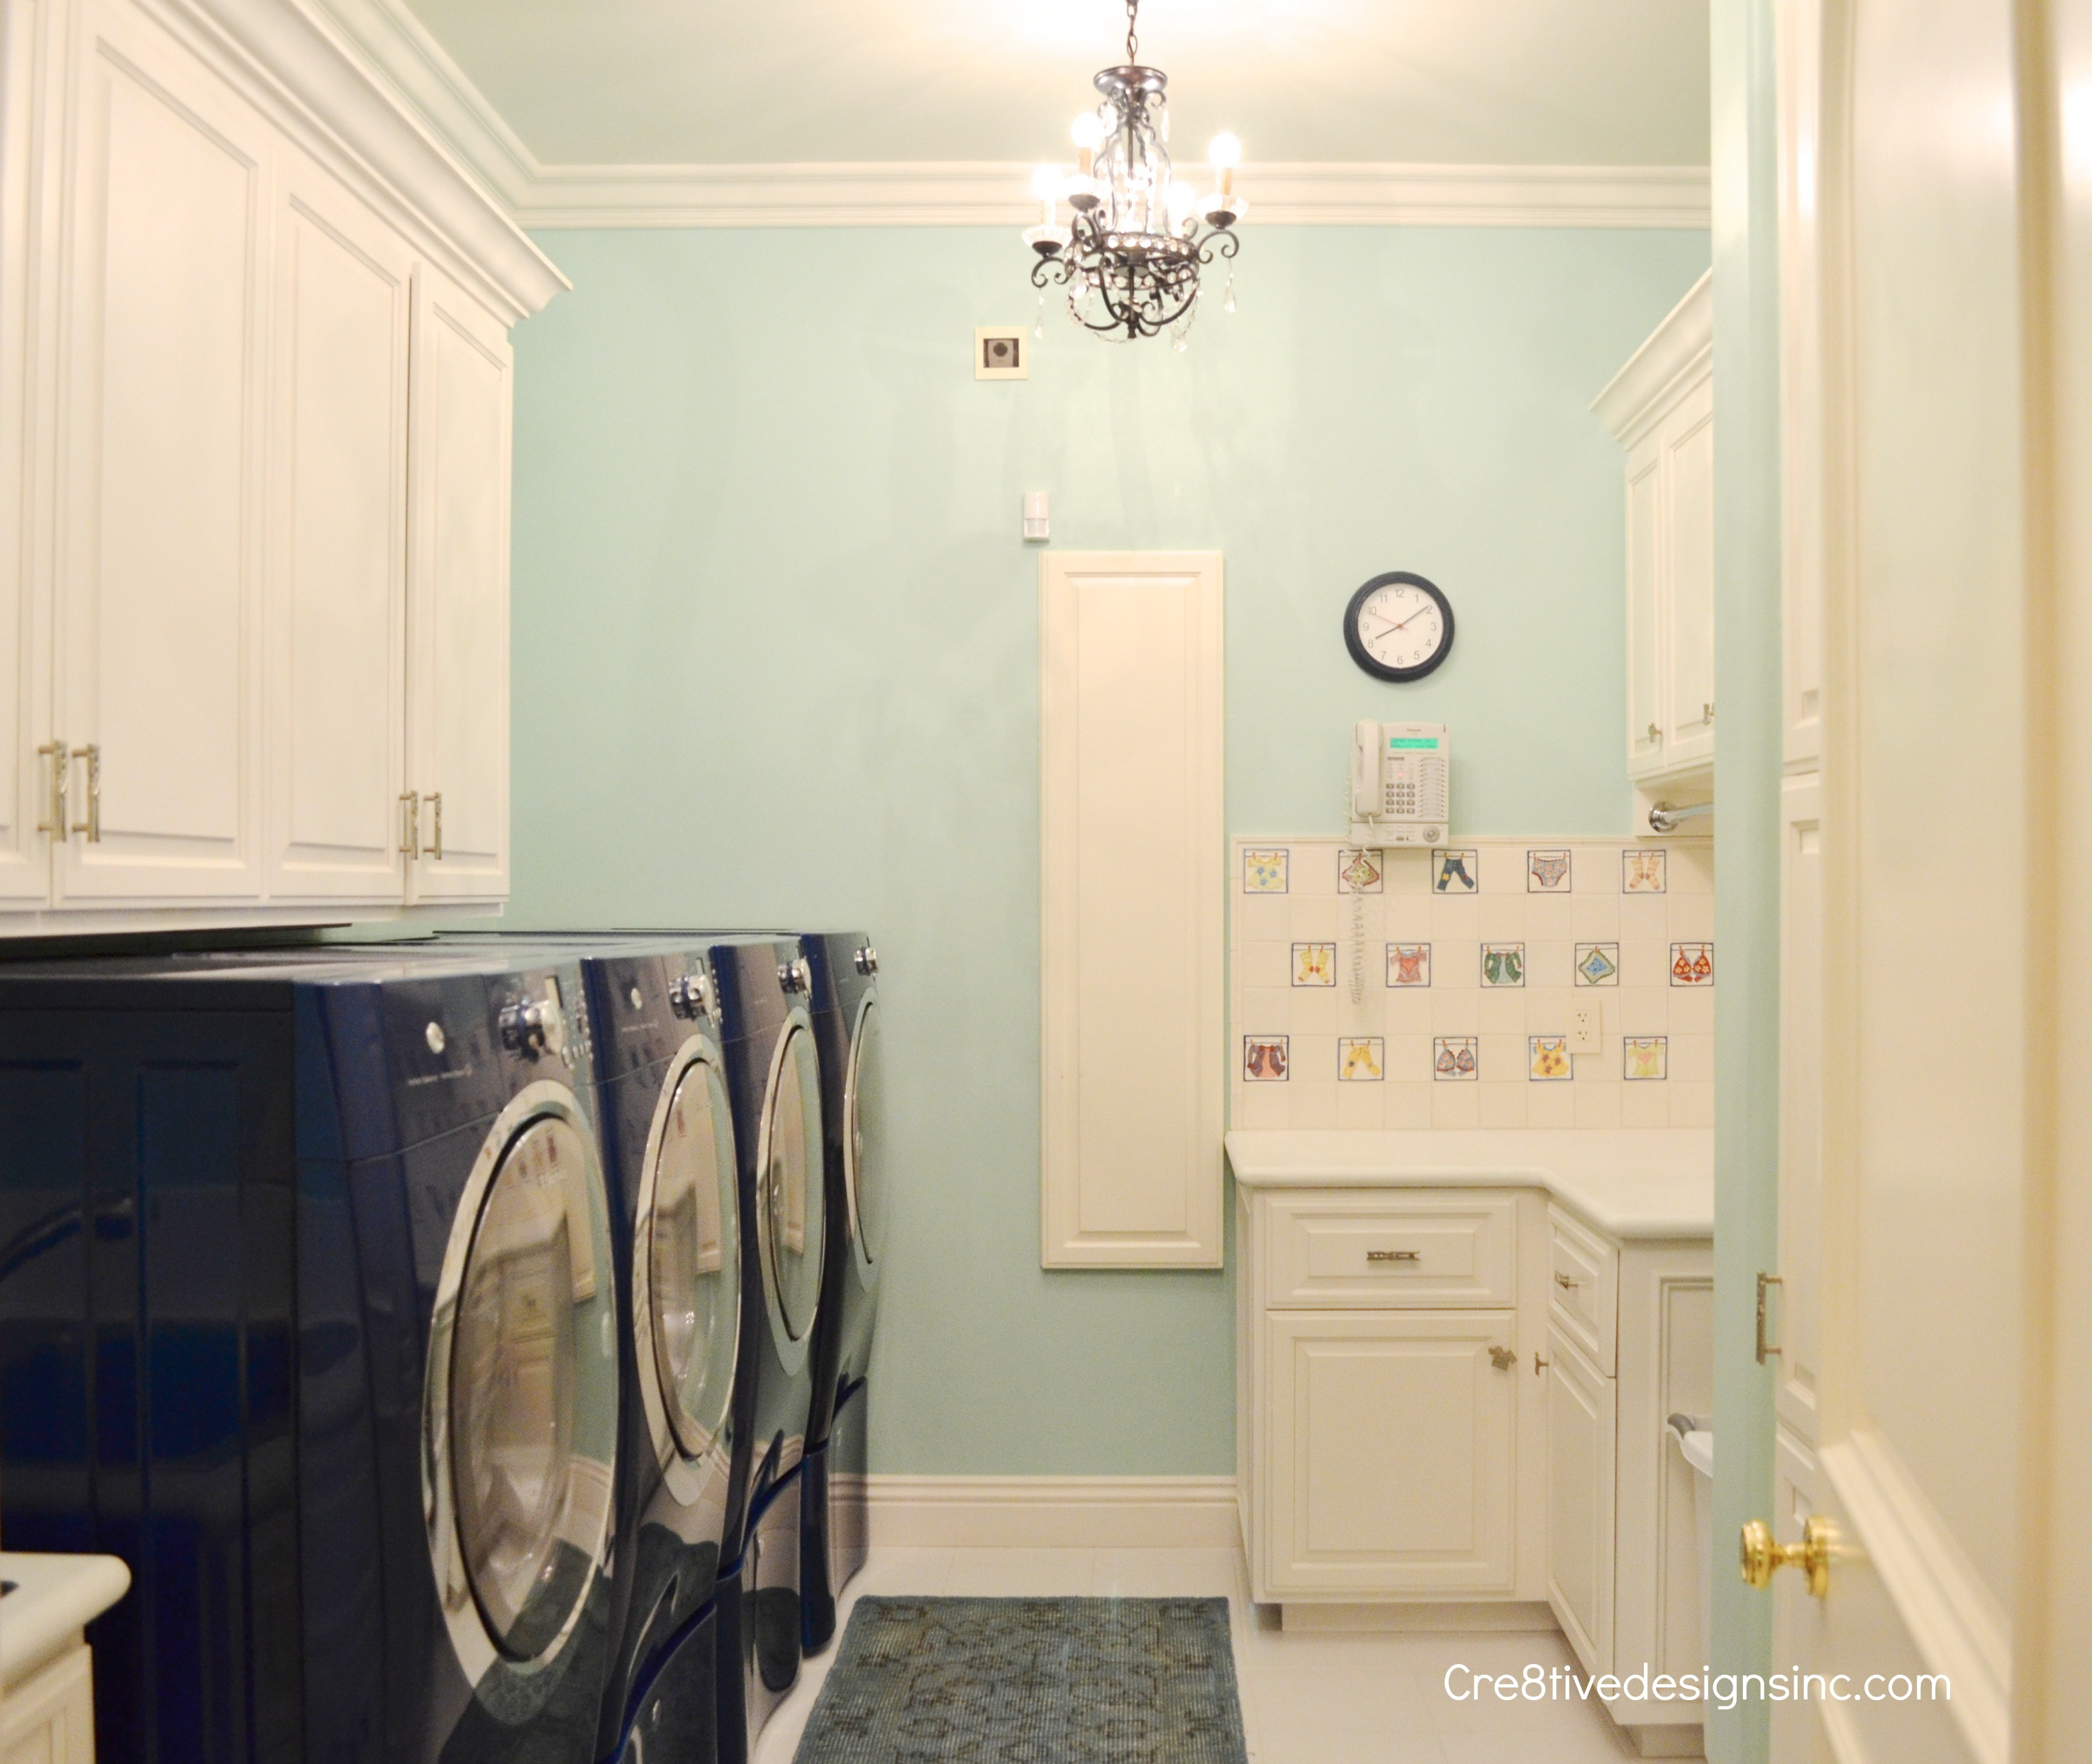 Navy and mint laundry room - Cre8tive Designs Inc.